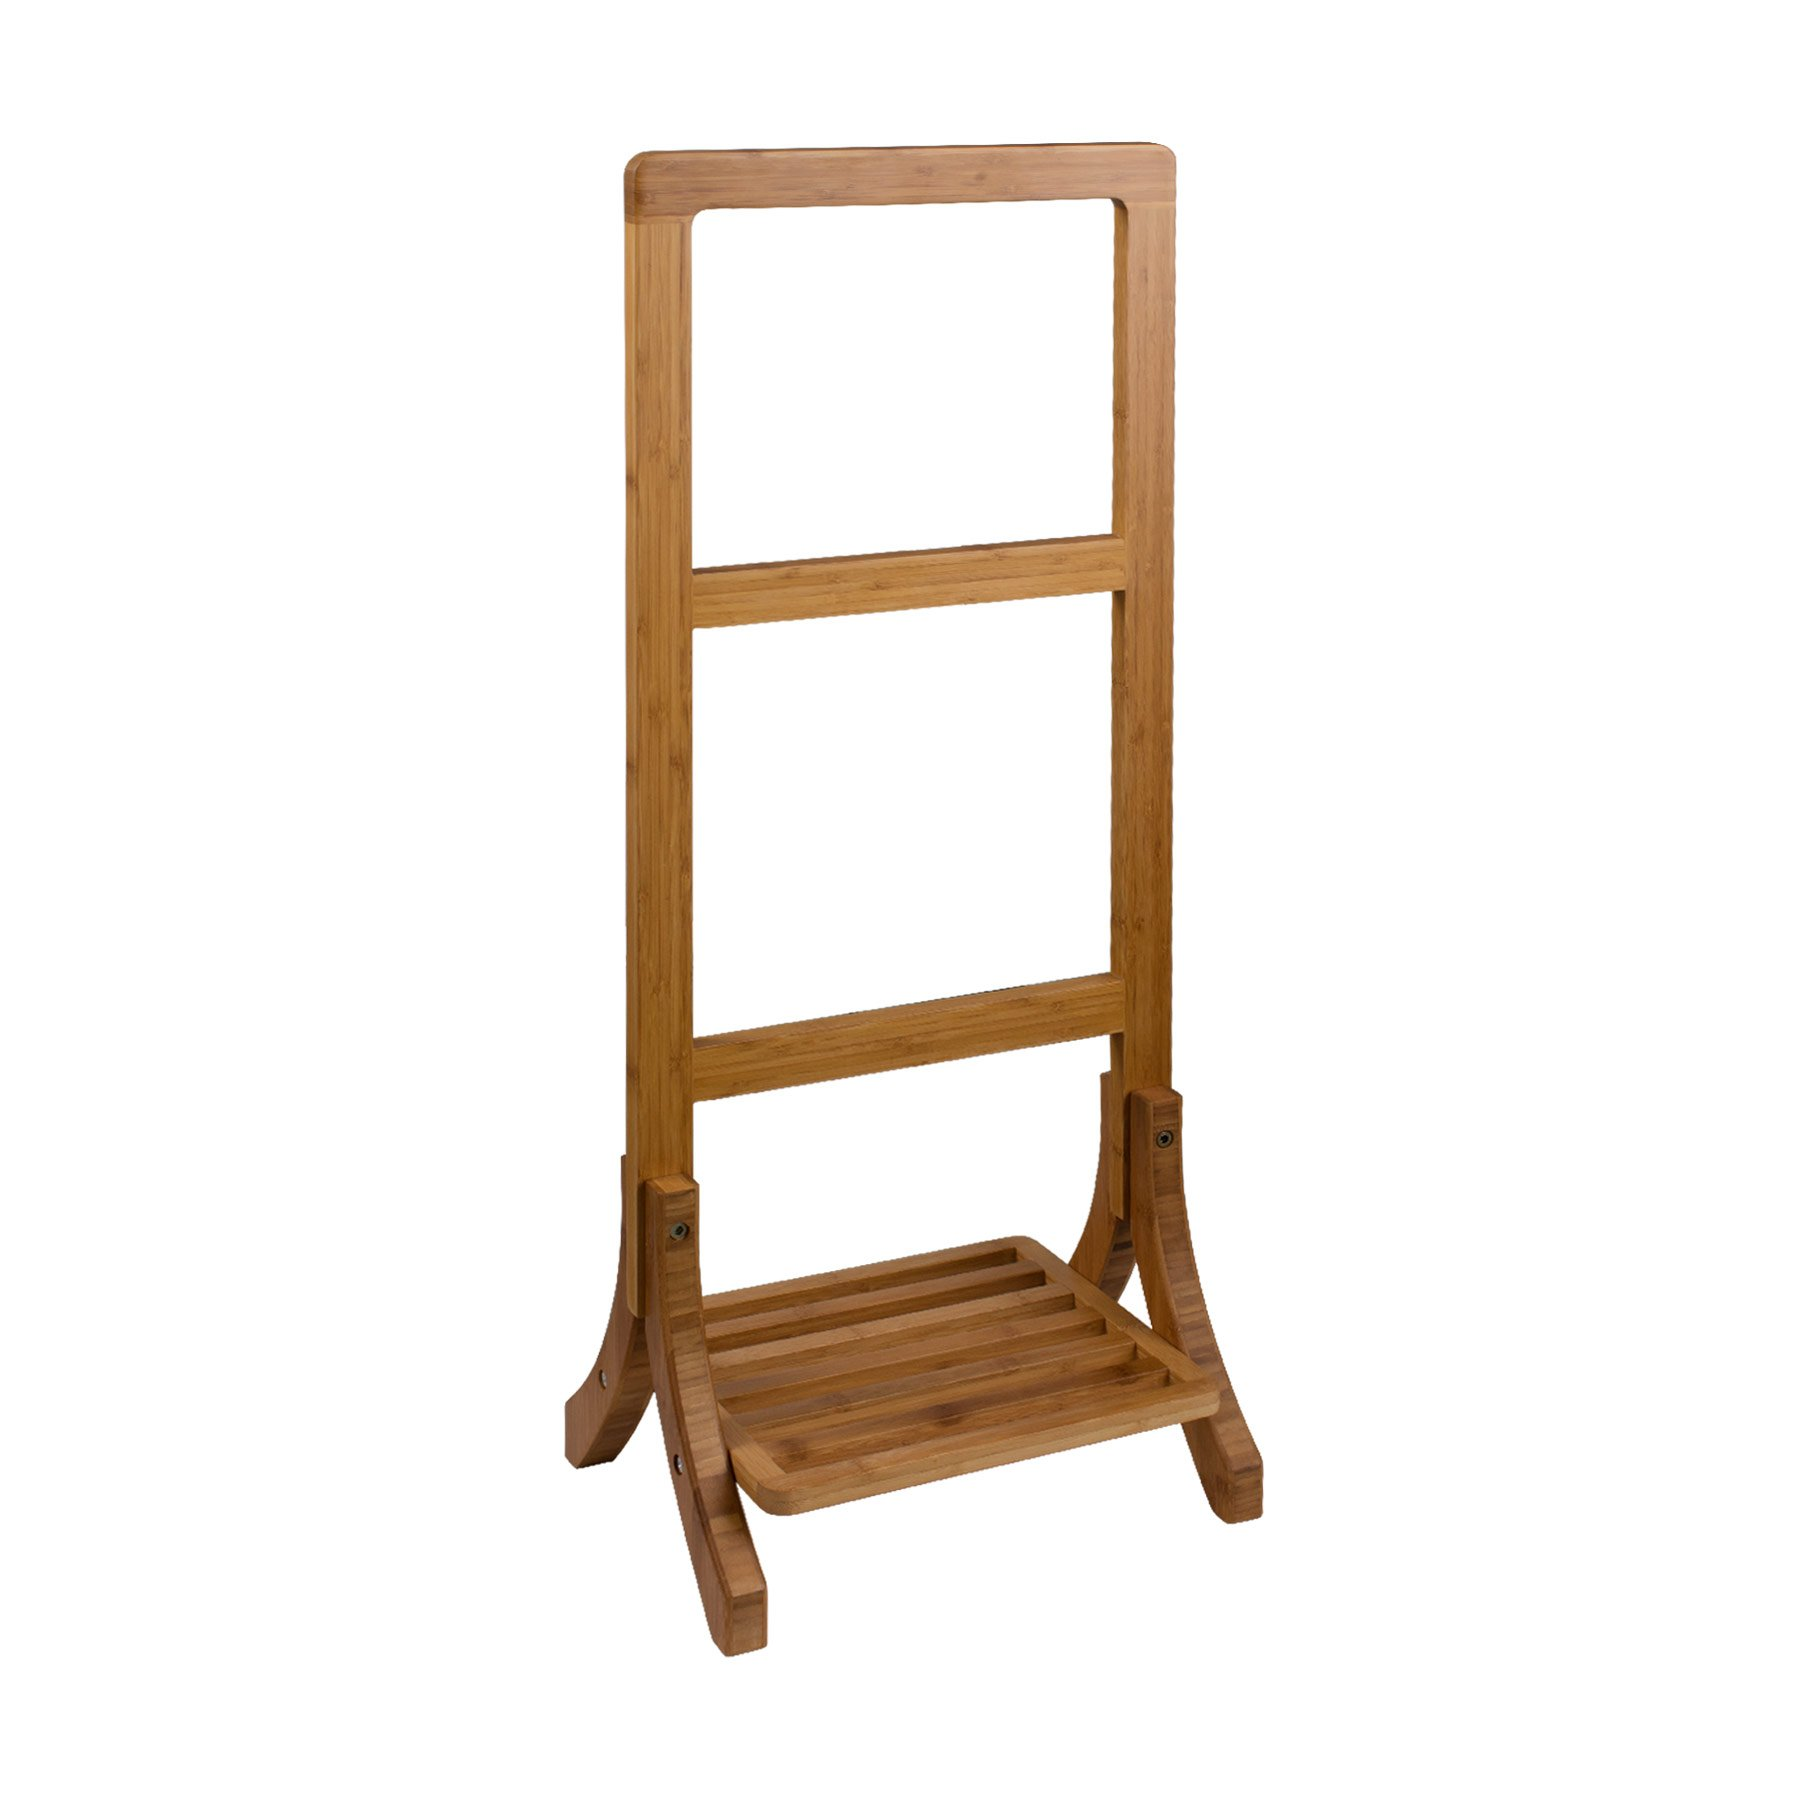 MAYKKE Griffith Natural Bamboo Standing Towel Rack   40'' Tall Contemporary Hanging Towel Clothes Stand with Shelf   Sustainable Bathroom Spa Multifunction Freestanding Storage Valet   NHA1120101